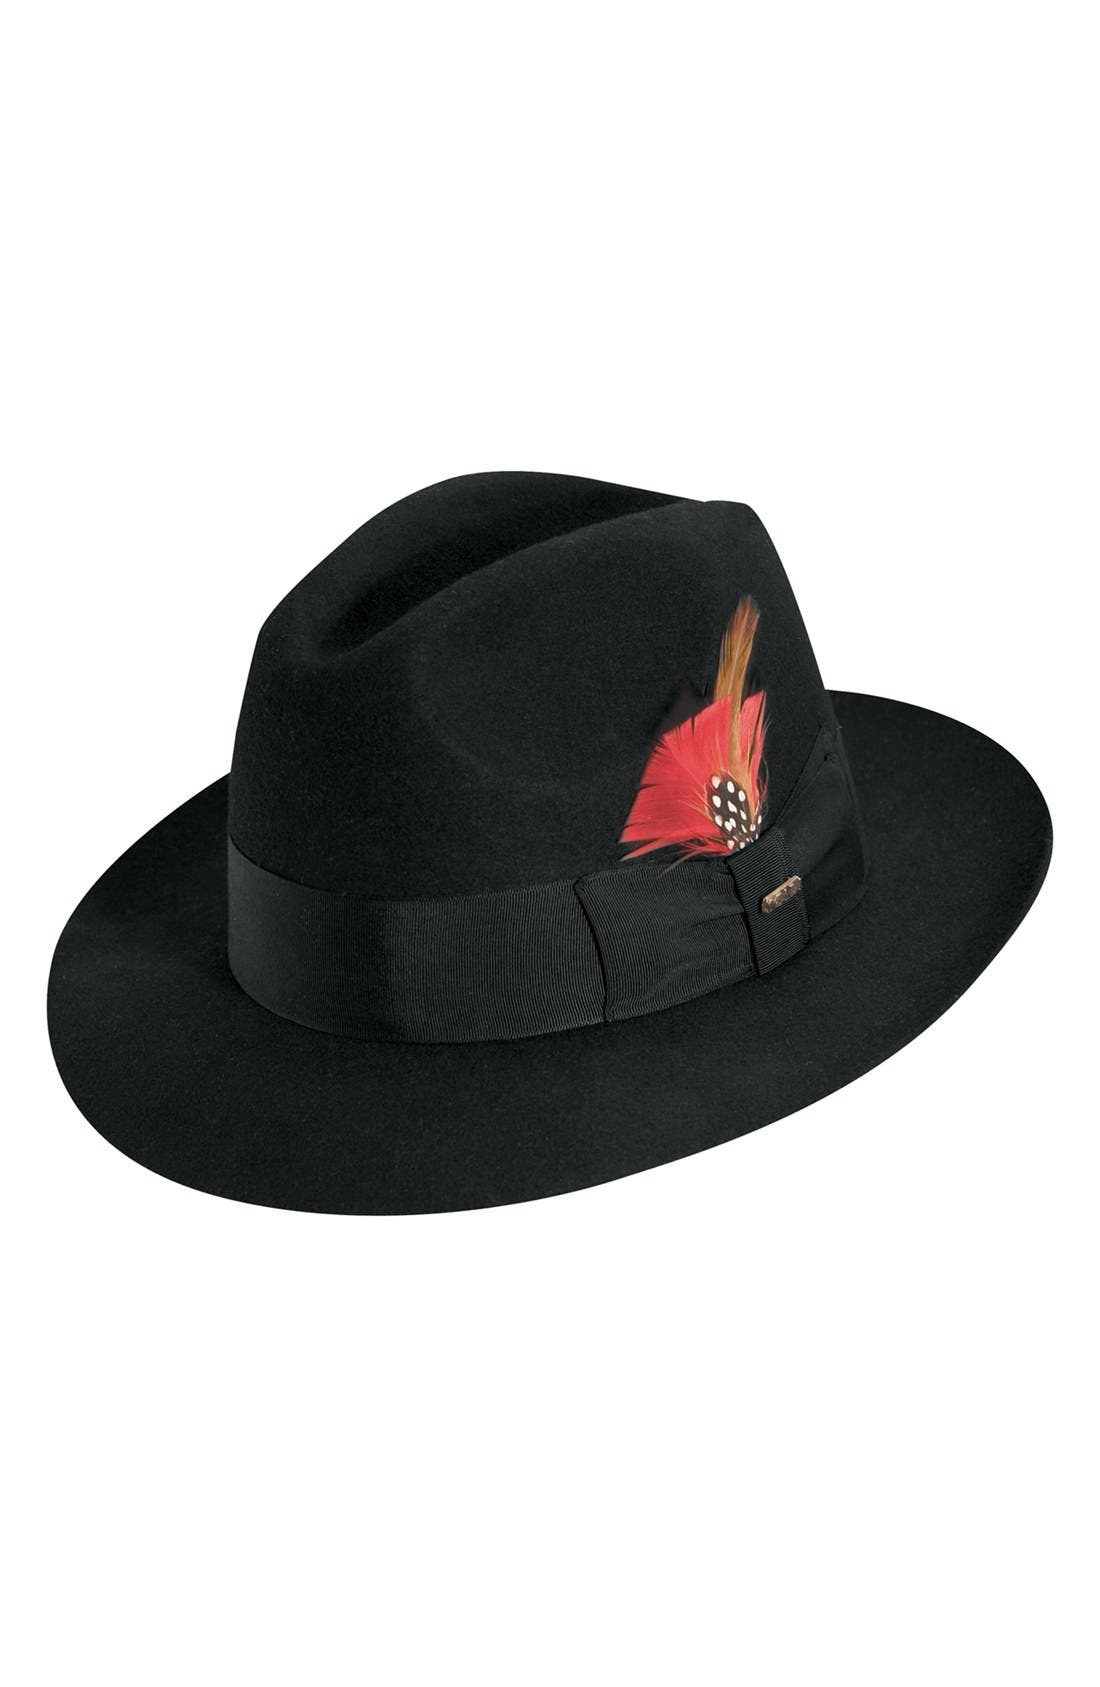 Alternate Image 1 Selected - Scala 'Classico' Wool Felt Fedora